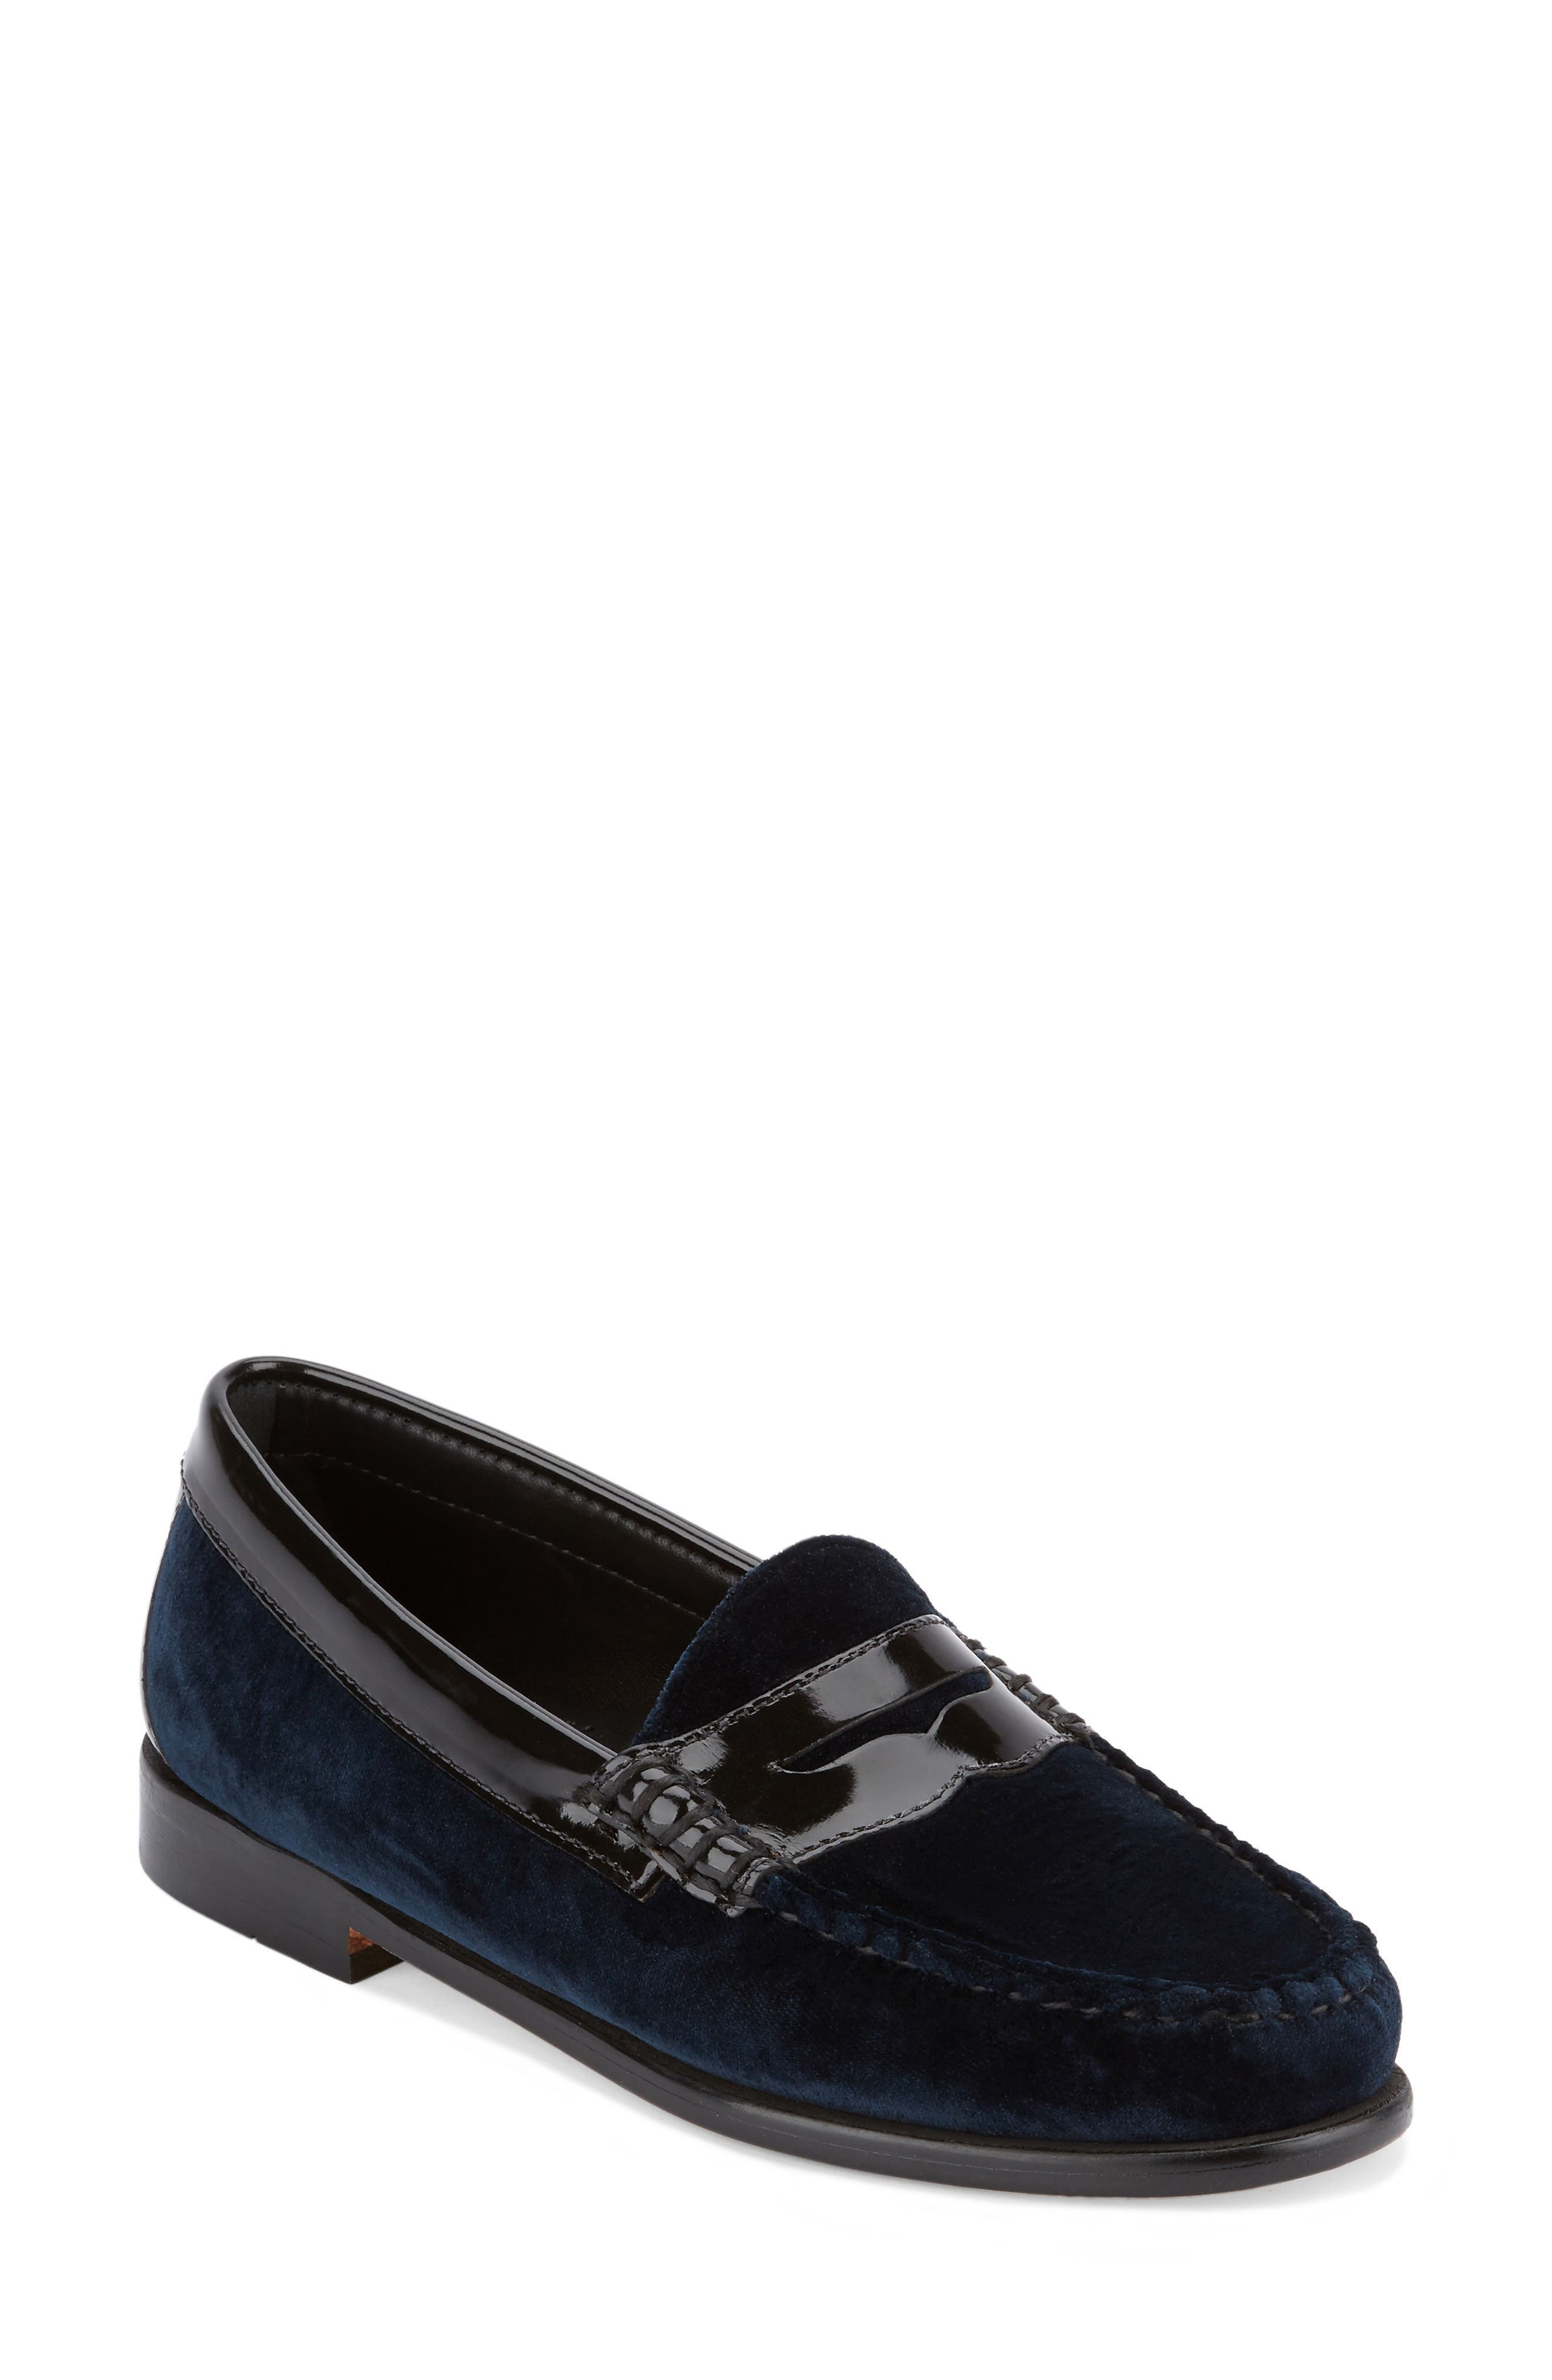 'Whitney' Loafer,                             Main thumbnail 7, color,